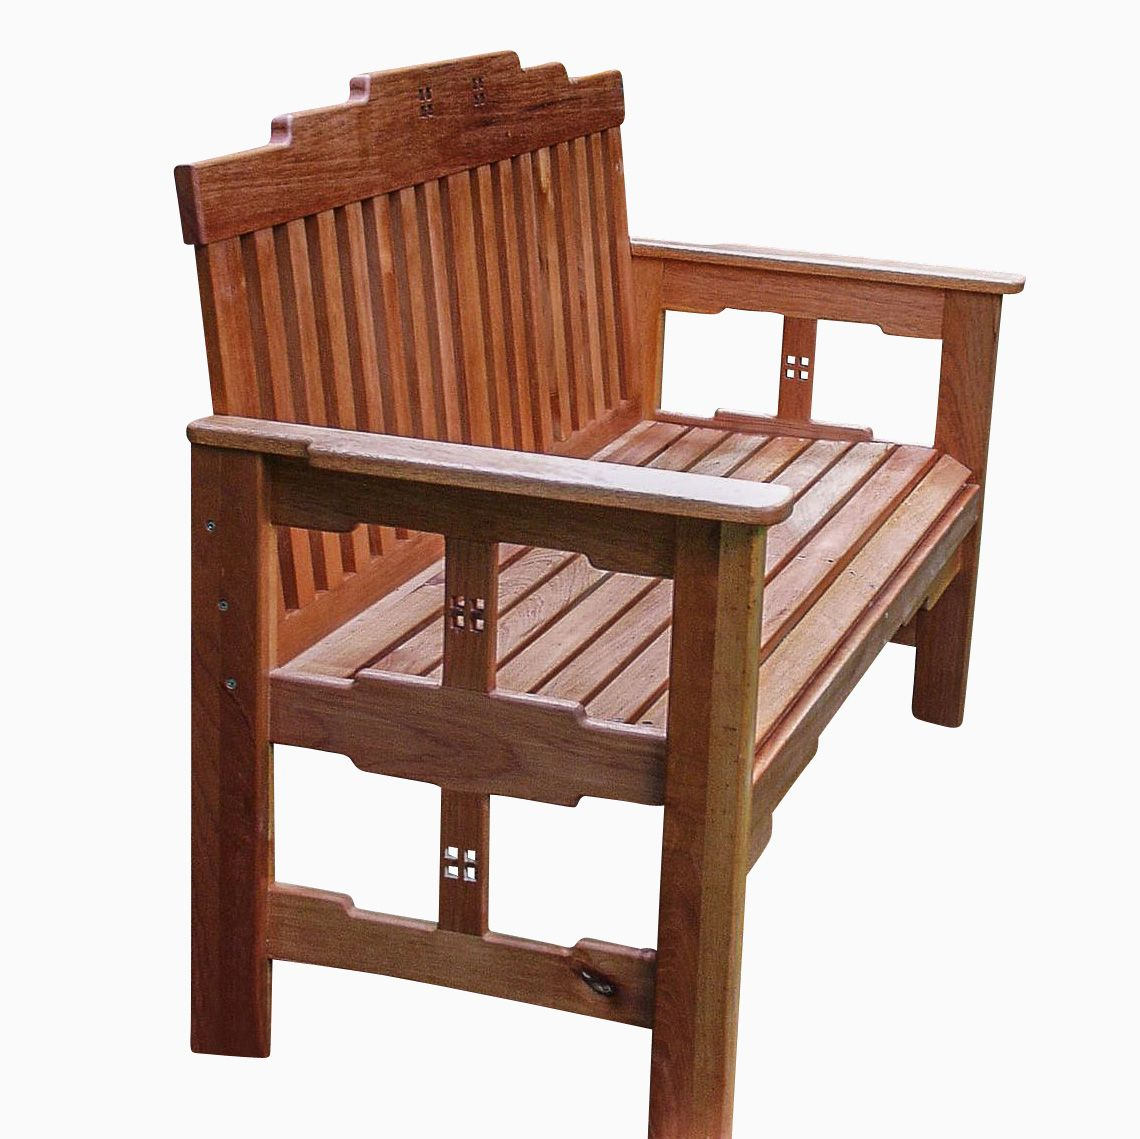 bedroom chair m&s summer winds patio chairs custom arts and crafts garden bench by dog woodworks